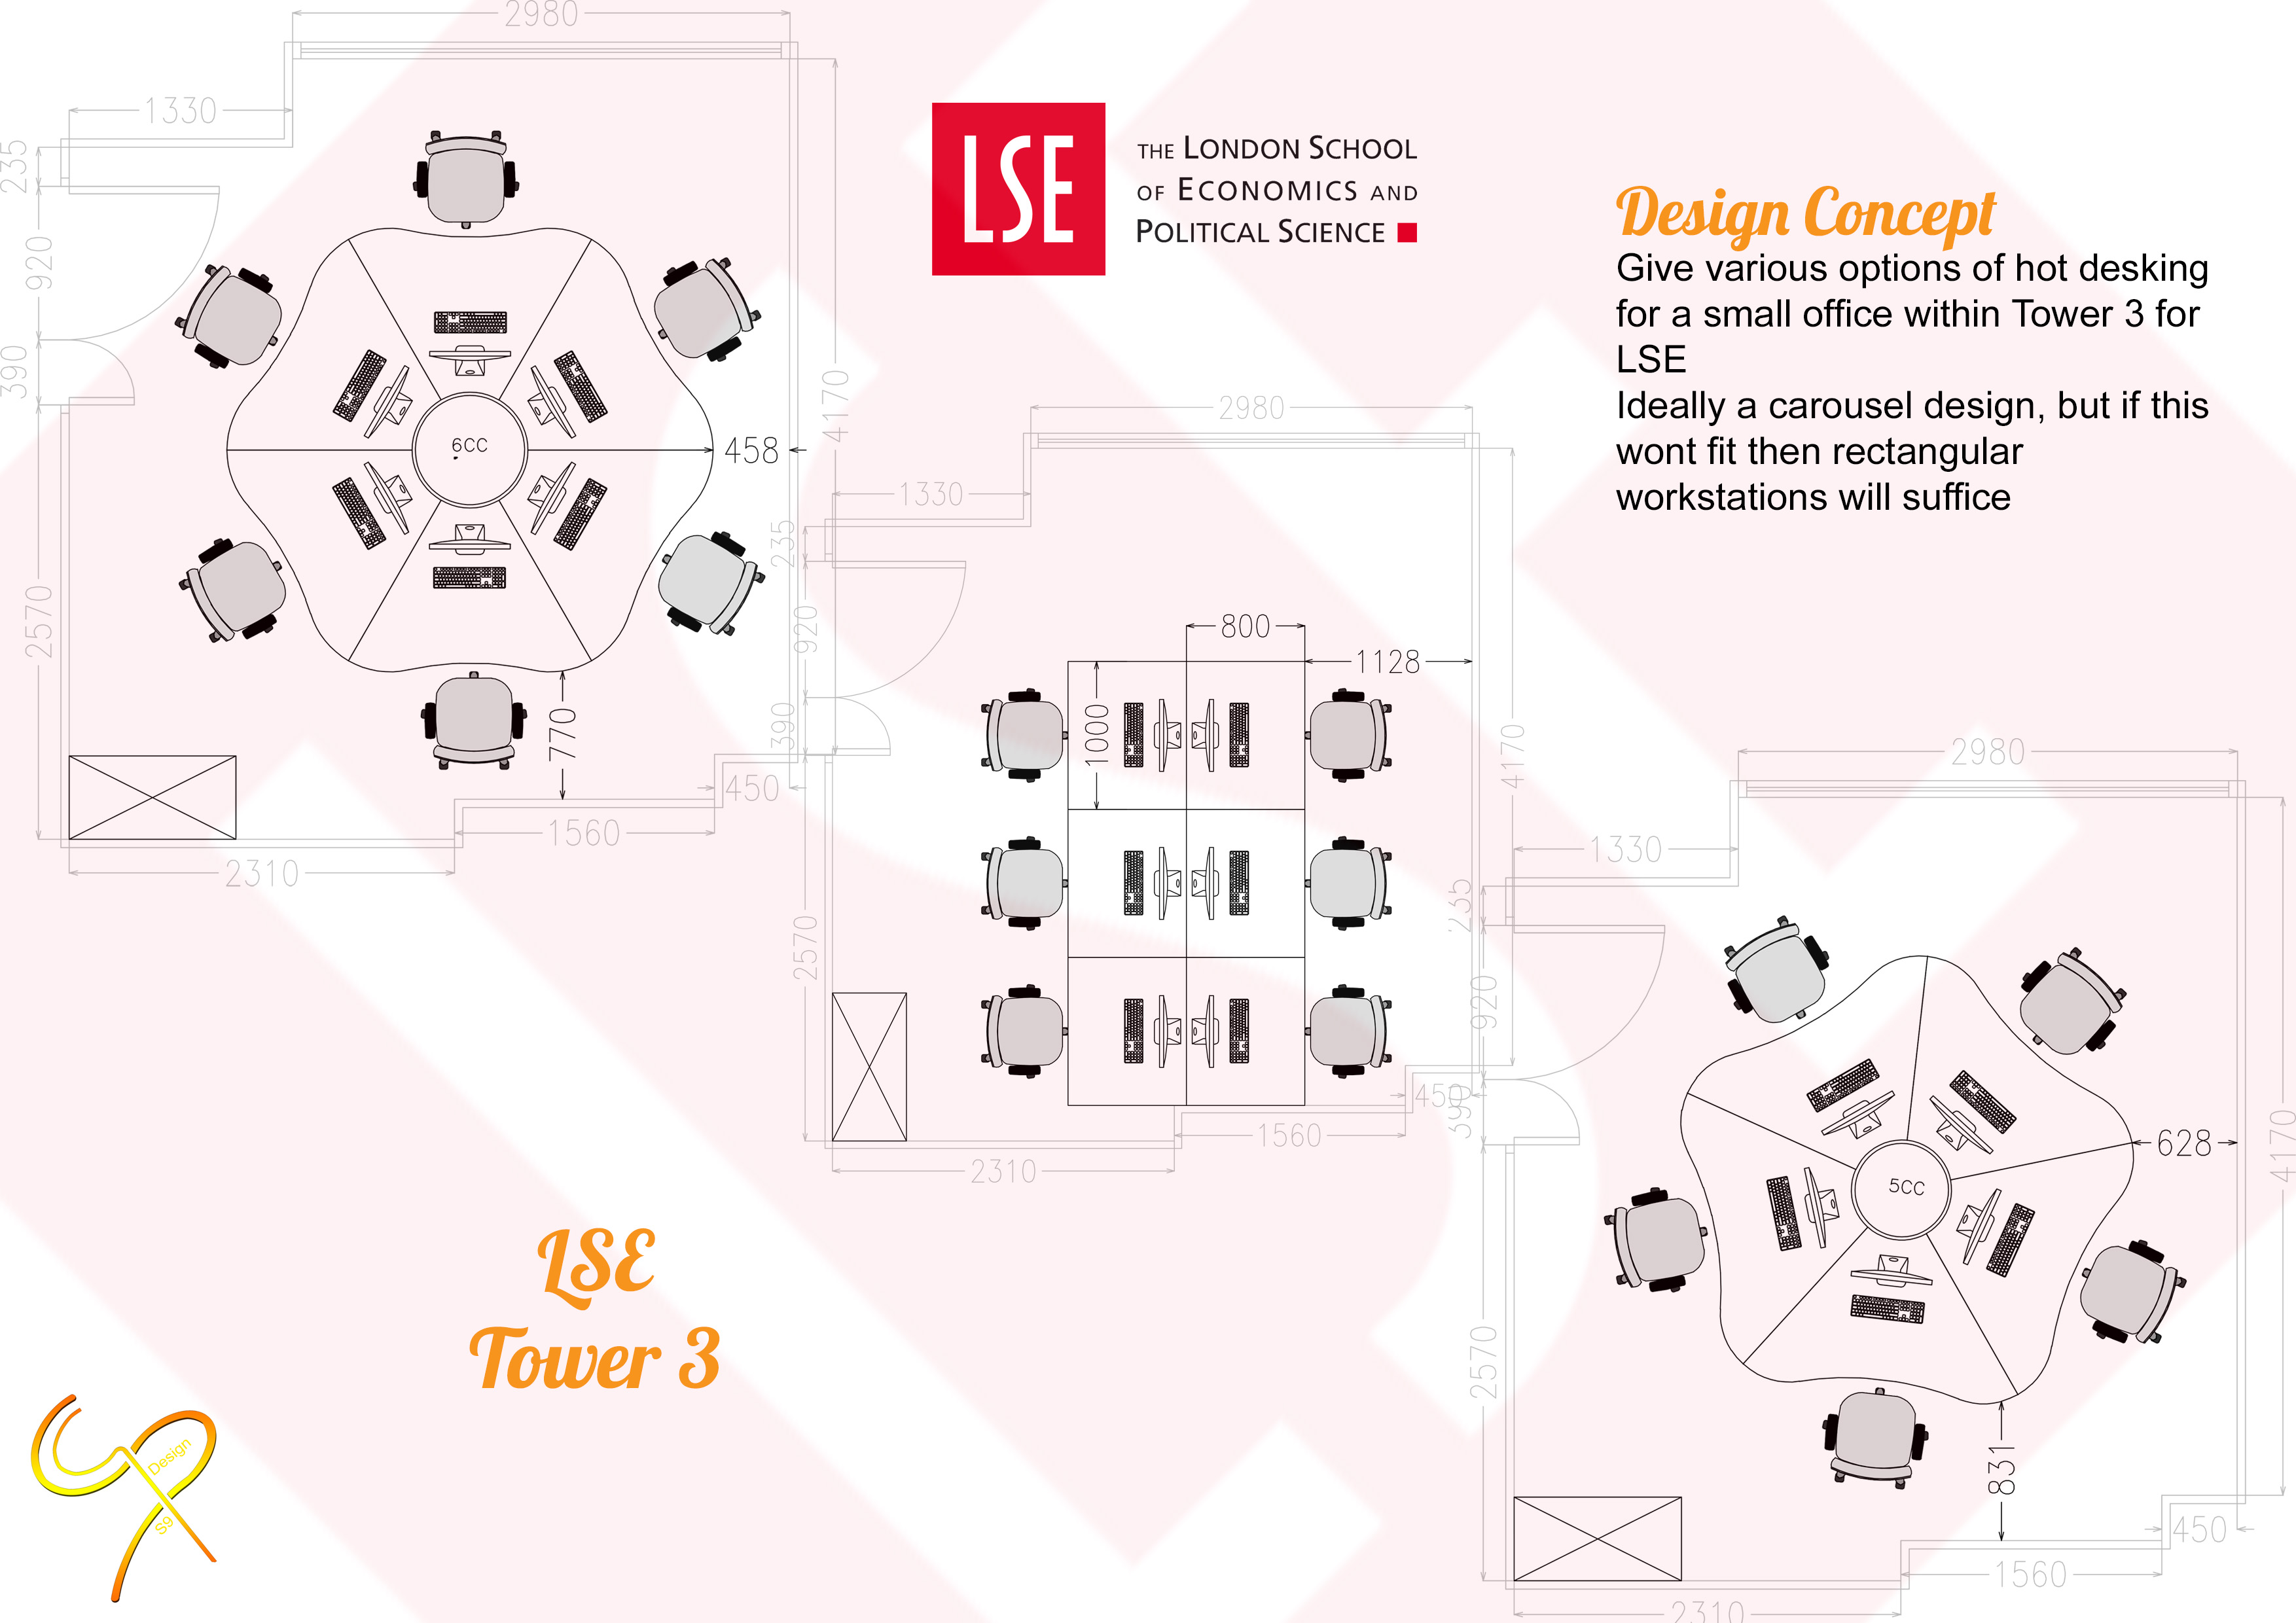 LSE - Tower 3